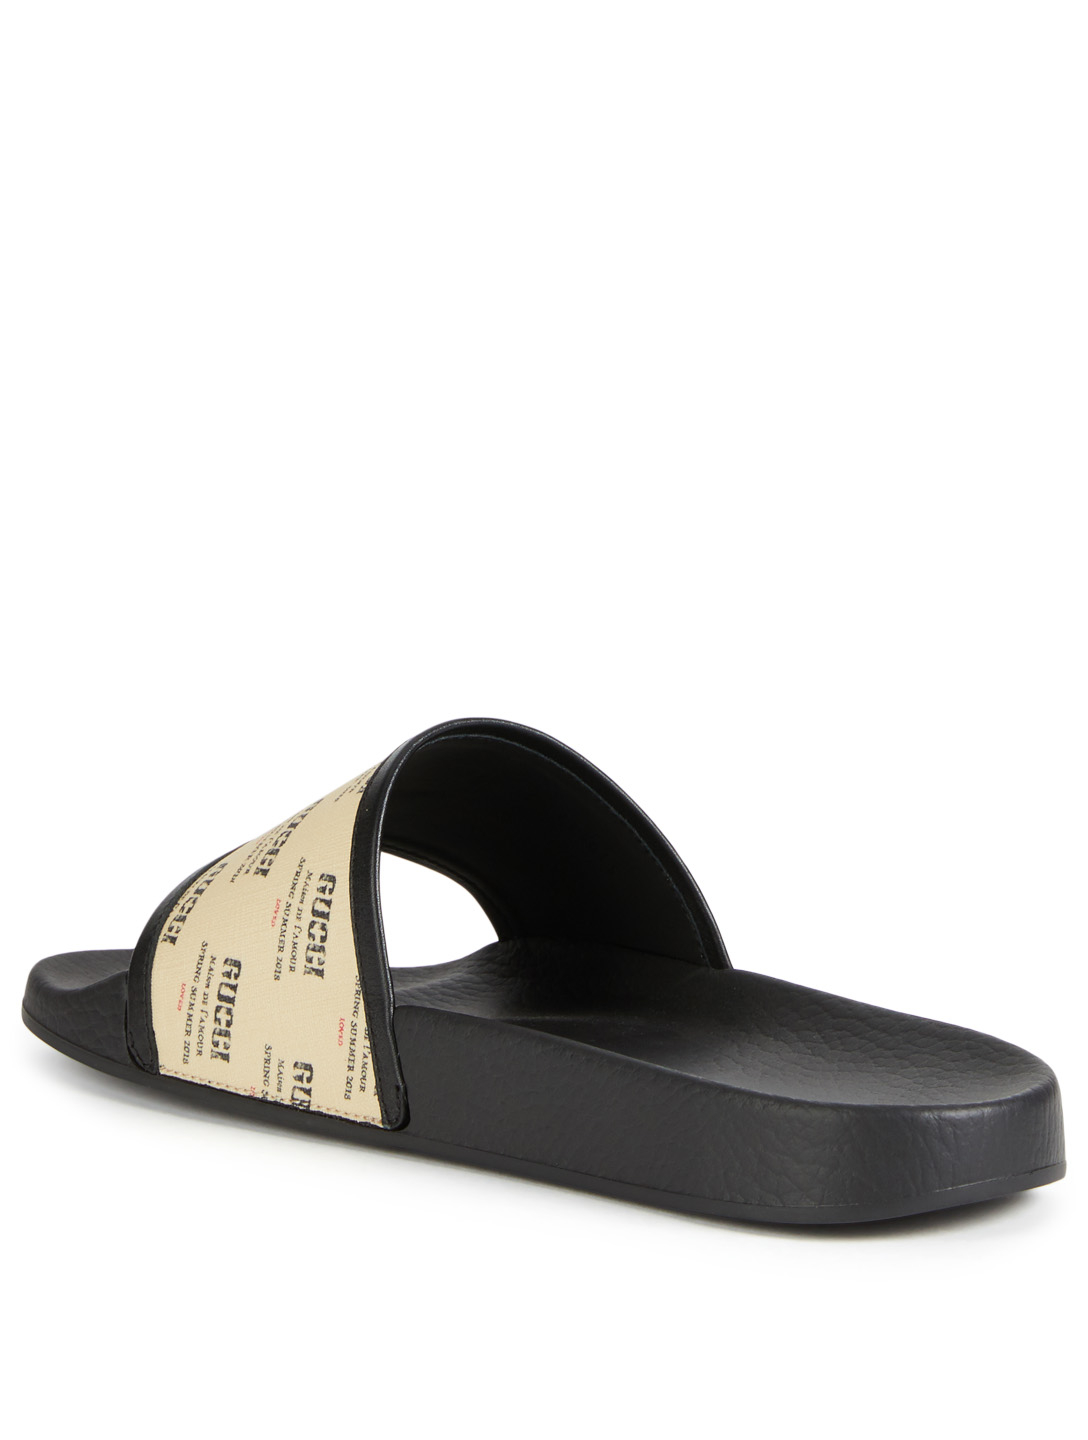 4293fe778ab ... GUCCI Pursuit Pool Slides With Gucci Stamp Strap Men s Neutral ...